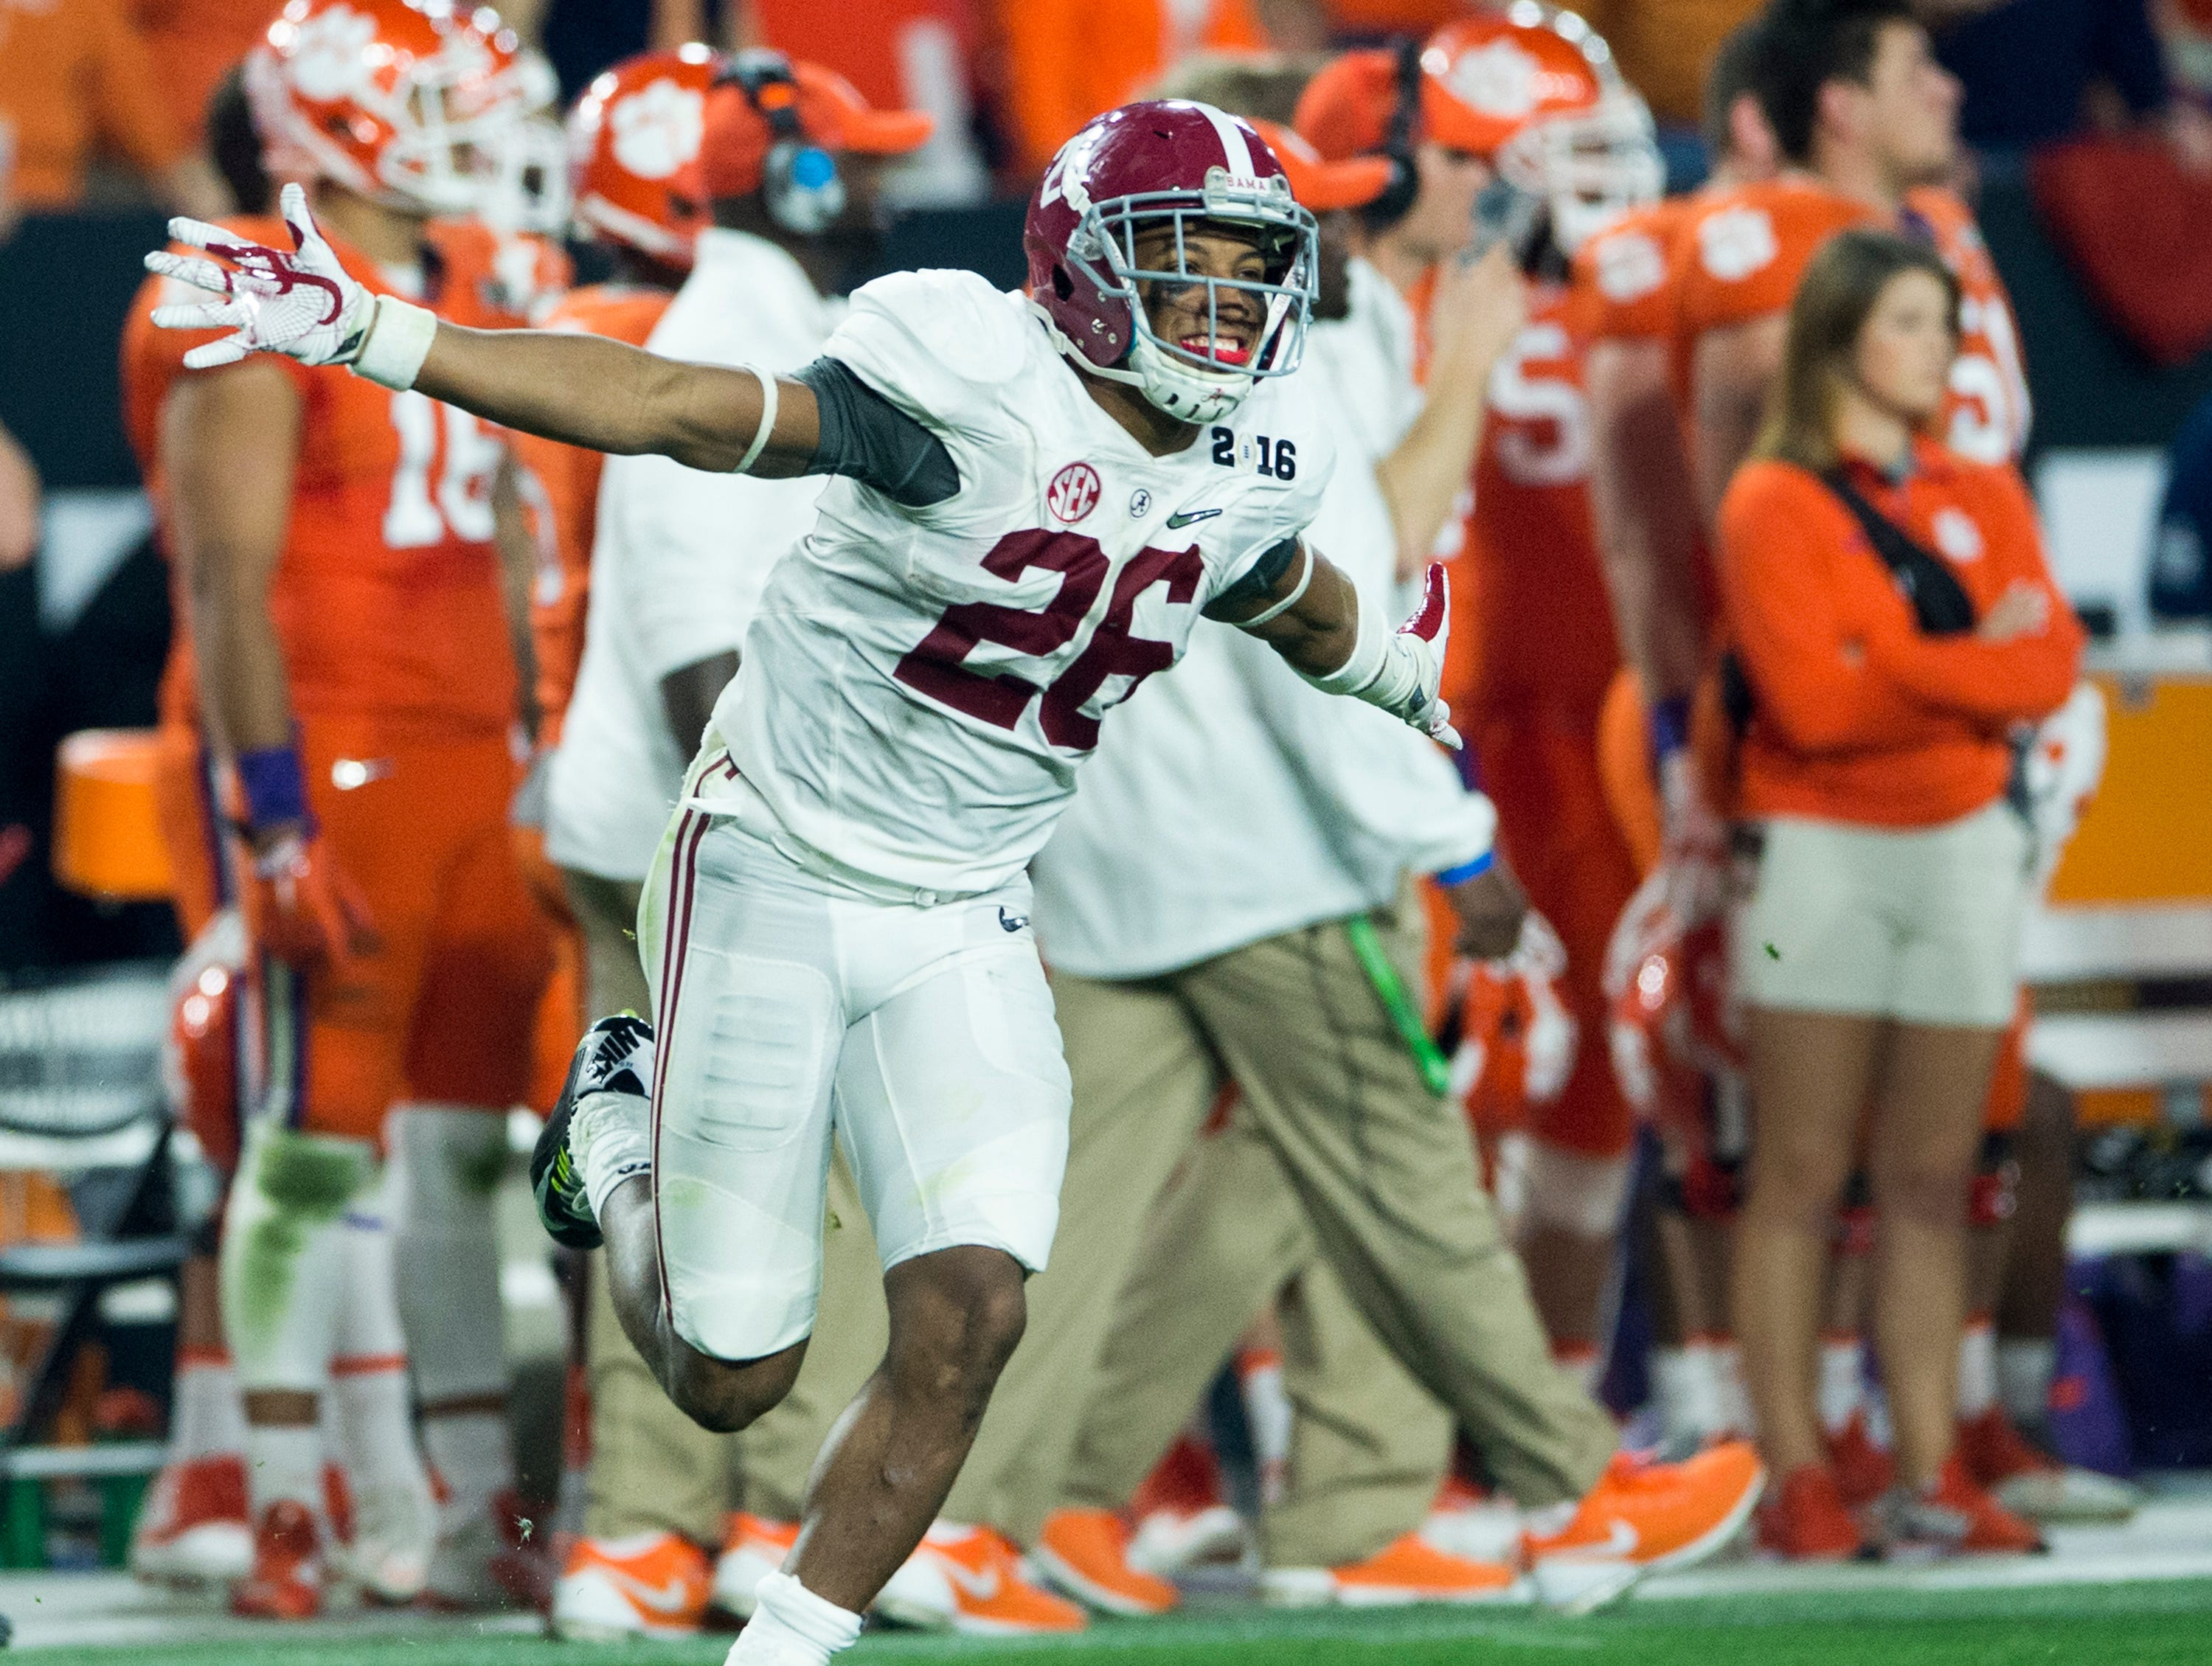 Alabama defensive back Marlon Humphrey (26) celebrates a successful onside kick in the College Football Playoff Championship Game on Monday January 11, 2016 at University of Phoenix Stadium in Glendale, Az.